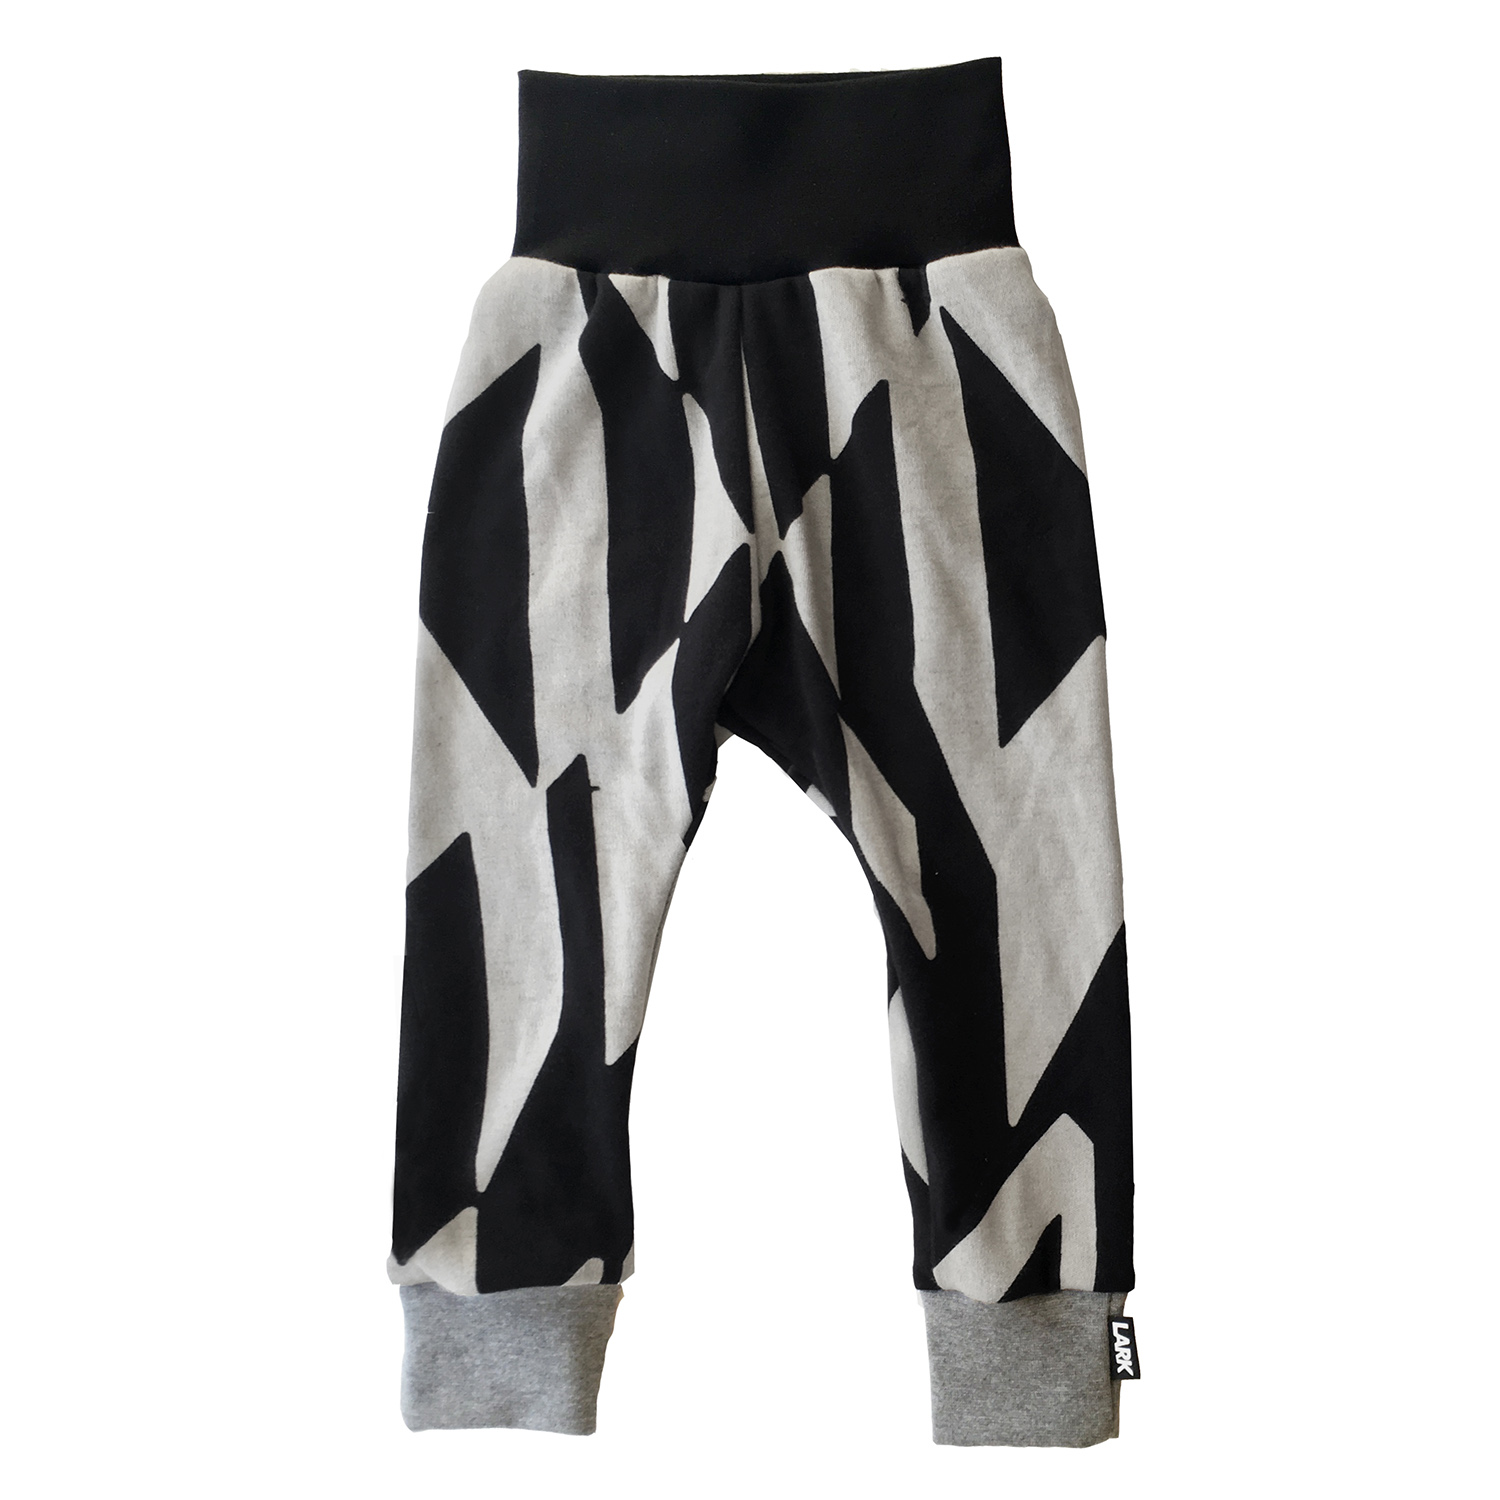 Dazzle.GreyCuff.Pants.websitepic.jpg